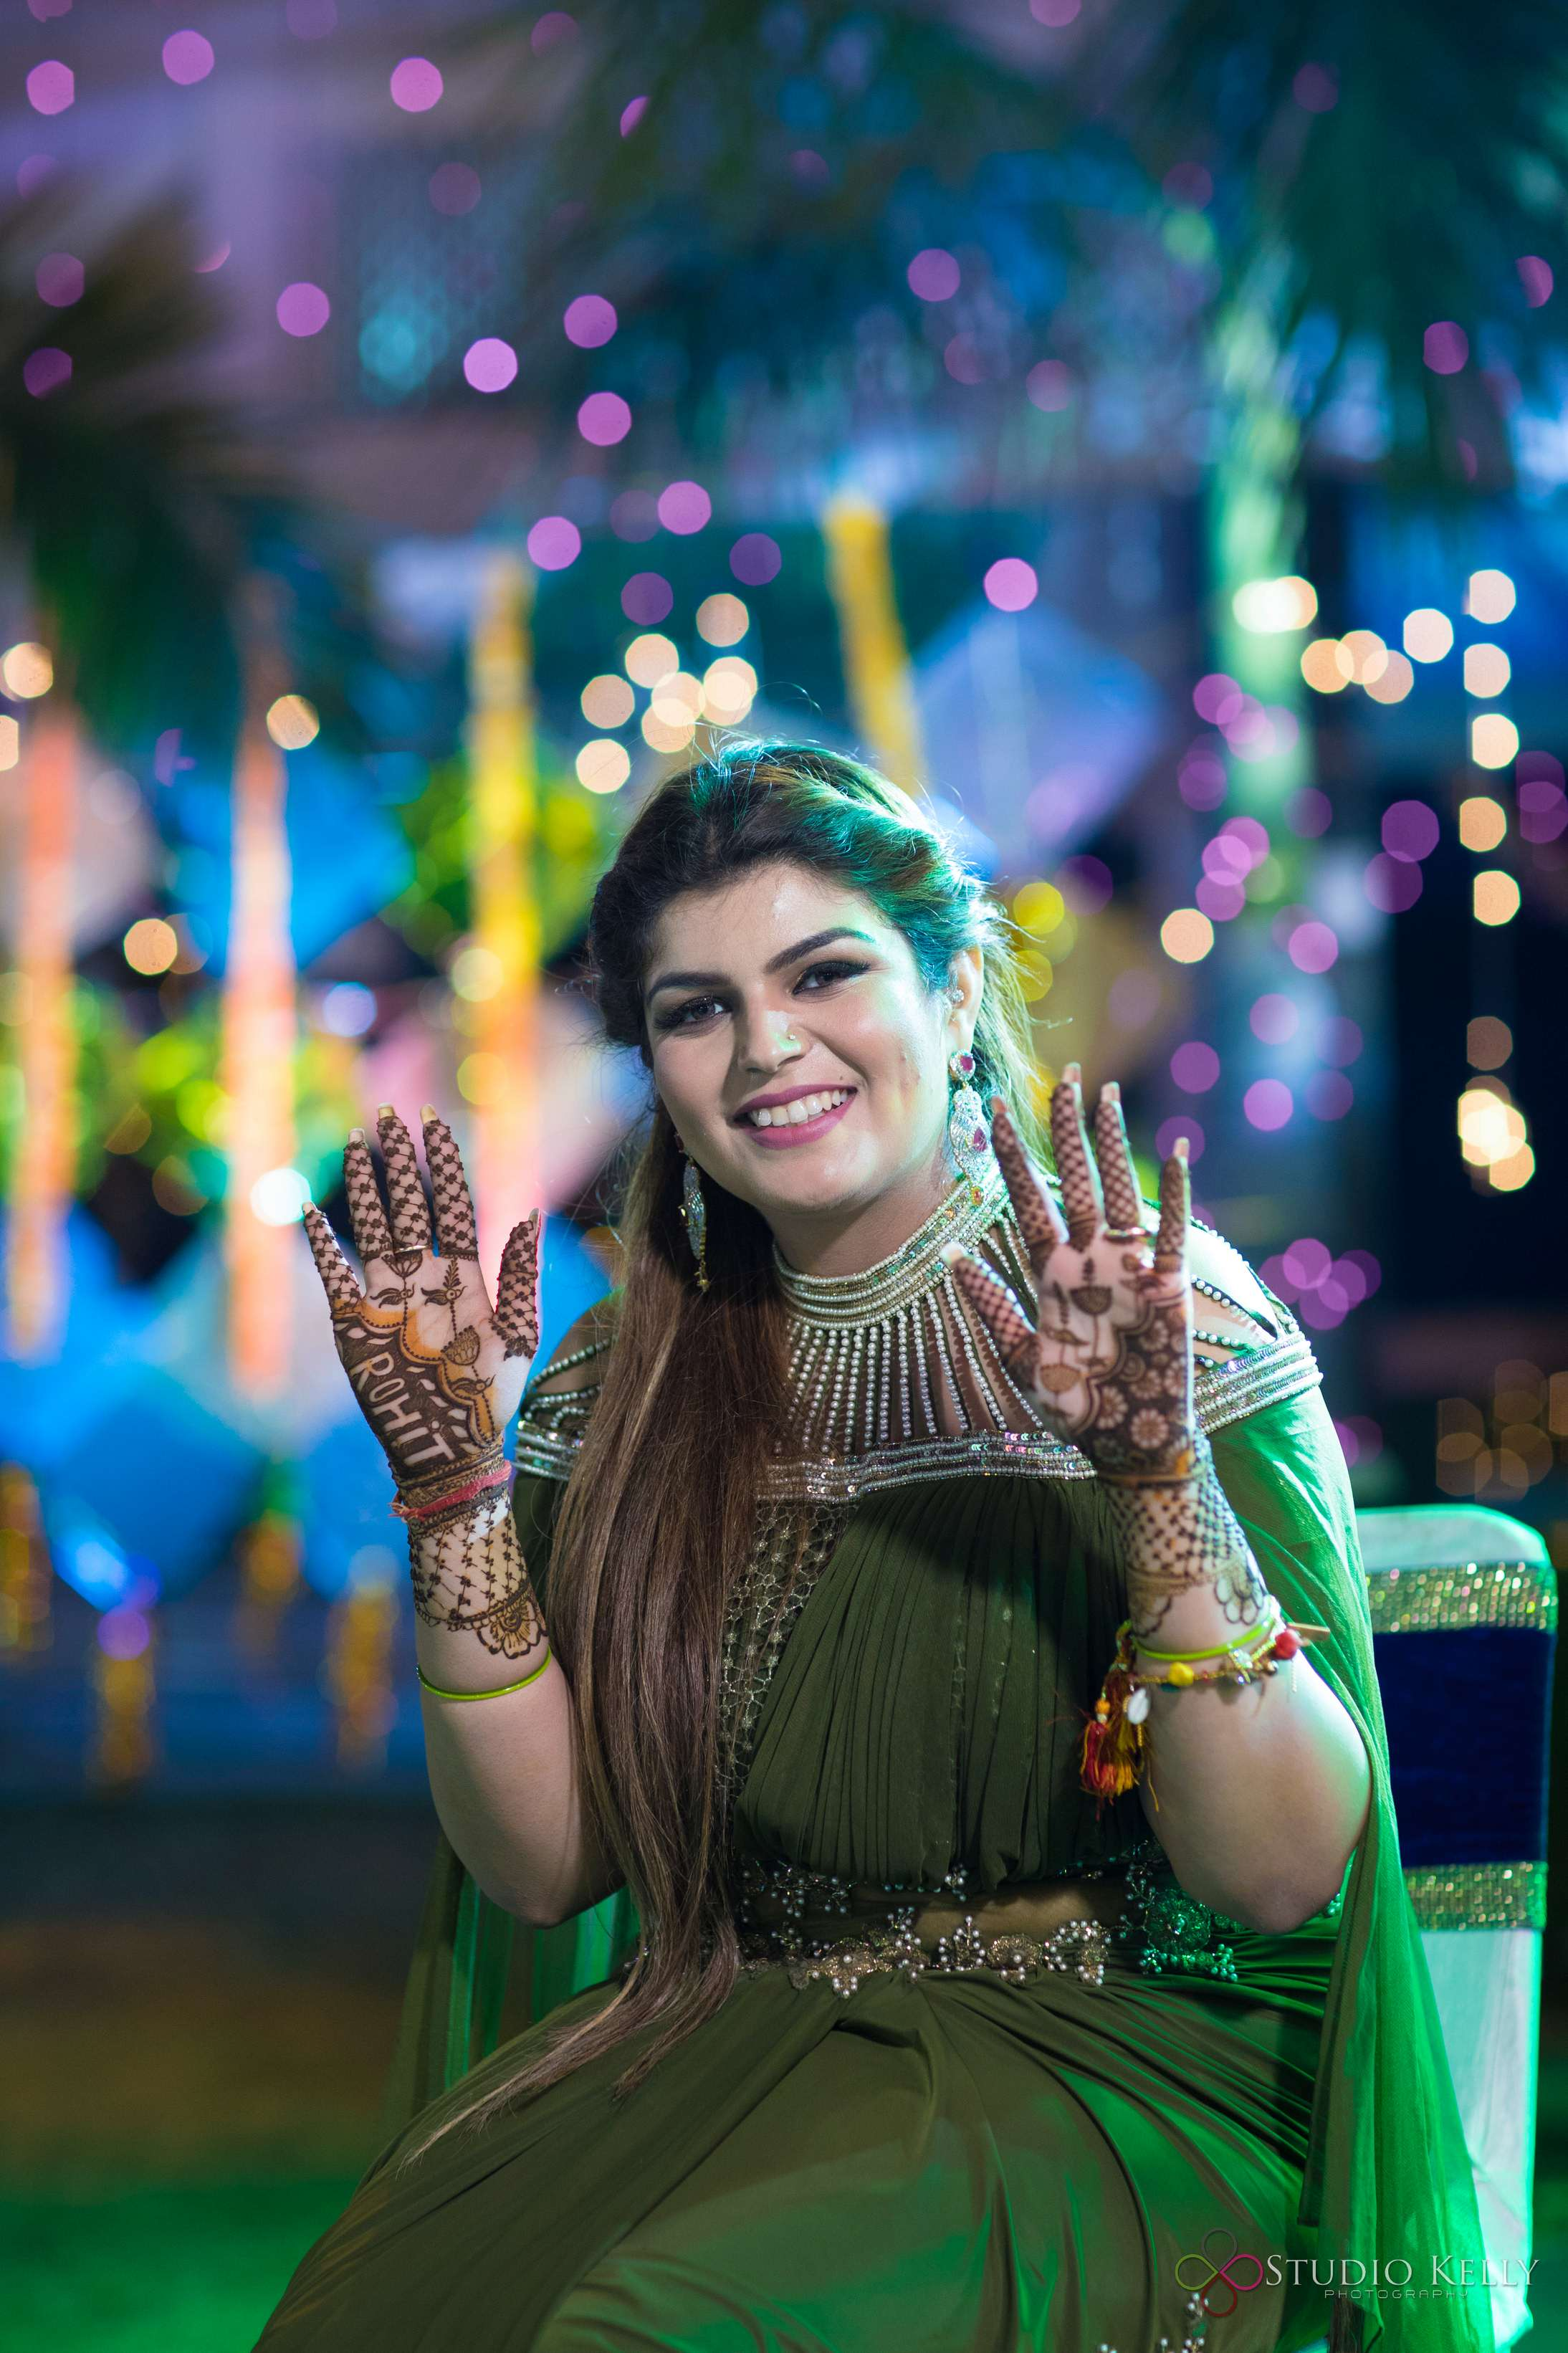 indian bridal mehendi | mhendi ideas | mehendi designs with groom's name | beautiful indian bridal mehendi | indian cocktail party pictures | indian wedding pictures | olive green bridal gown | indian bridal indo-western | green bridal gown | beautiful Indian bridal gown | fun party pictures | indian cocktail party ideas | function mania